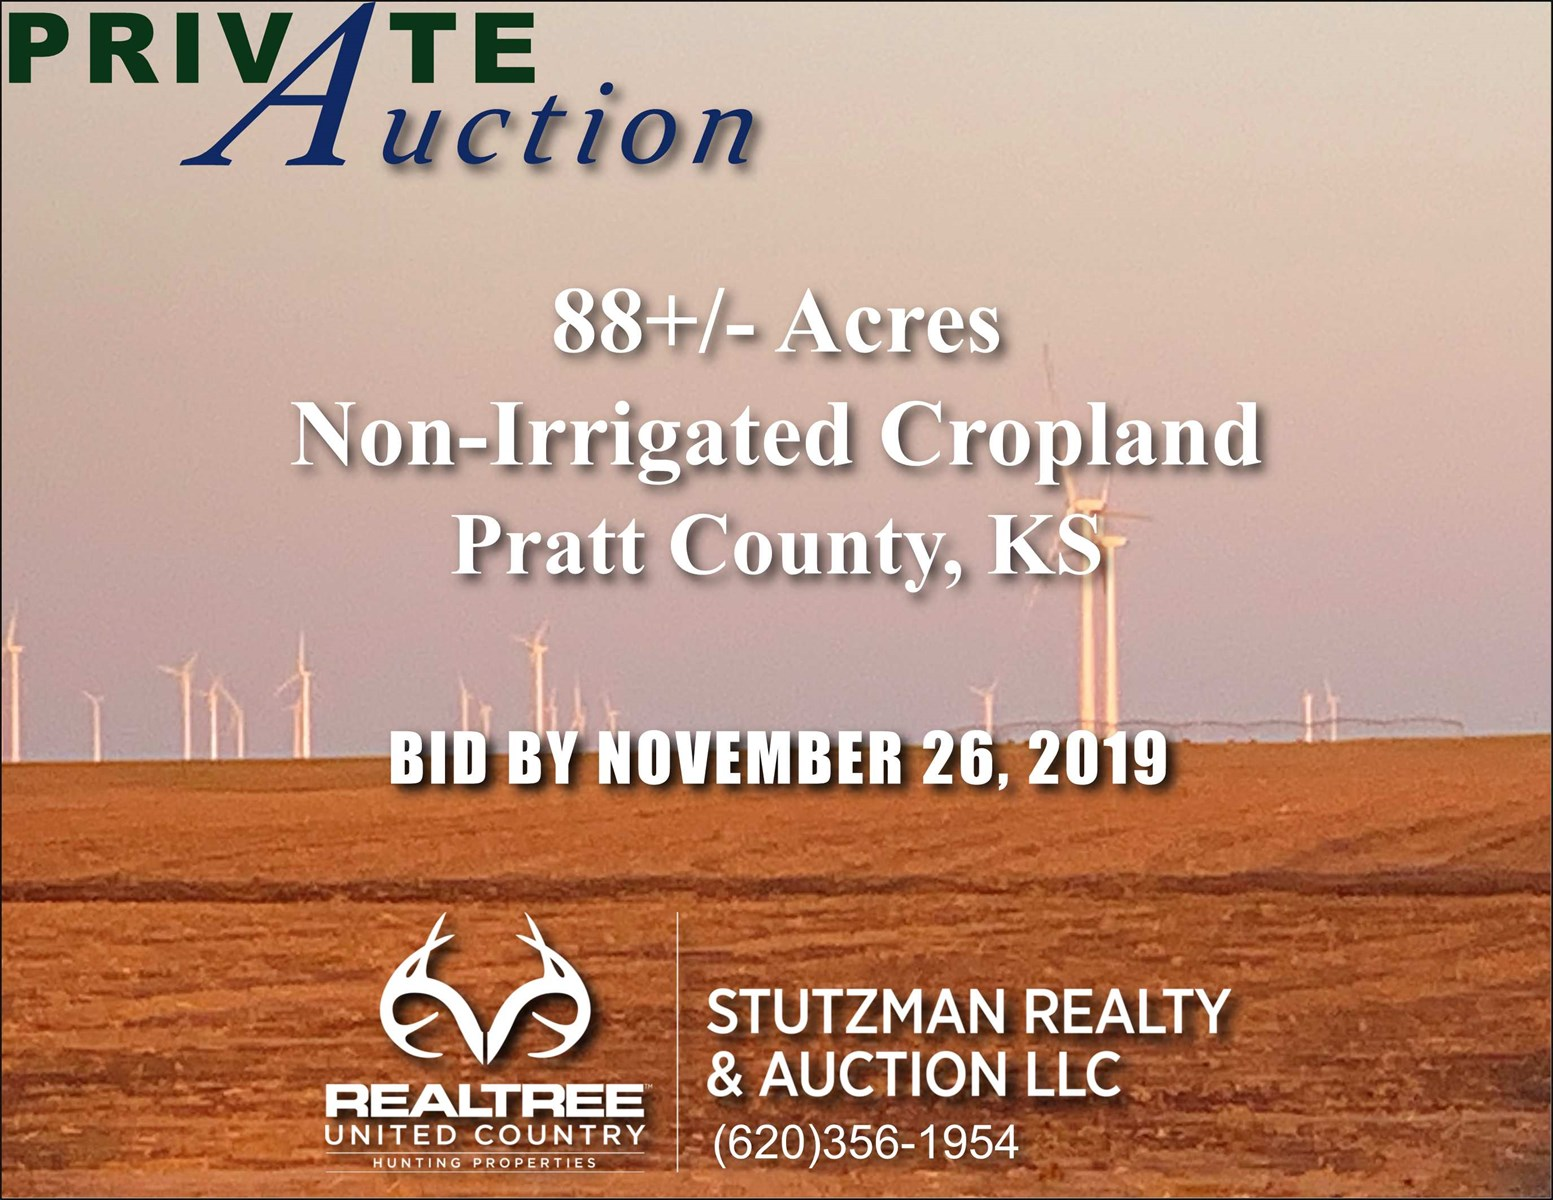 PRATT KS 88+/- ACRES ~ NON-IRRIGATED CROPLAND